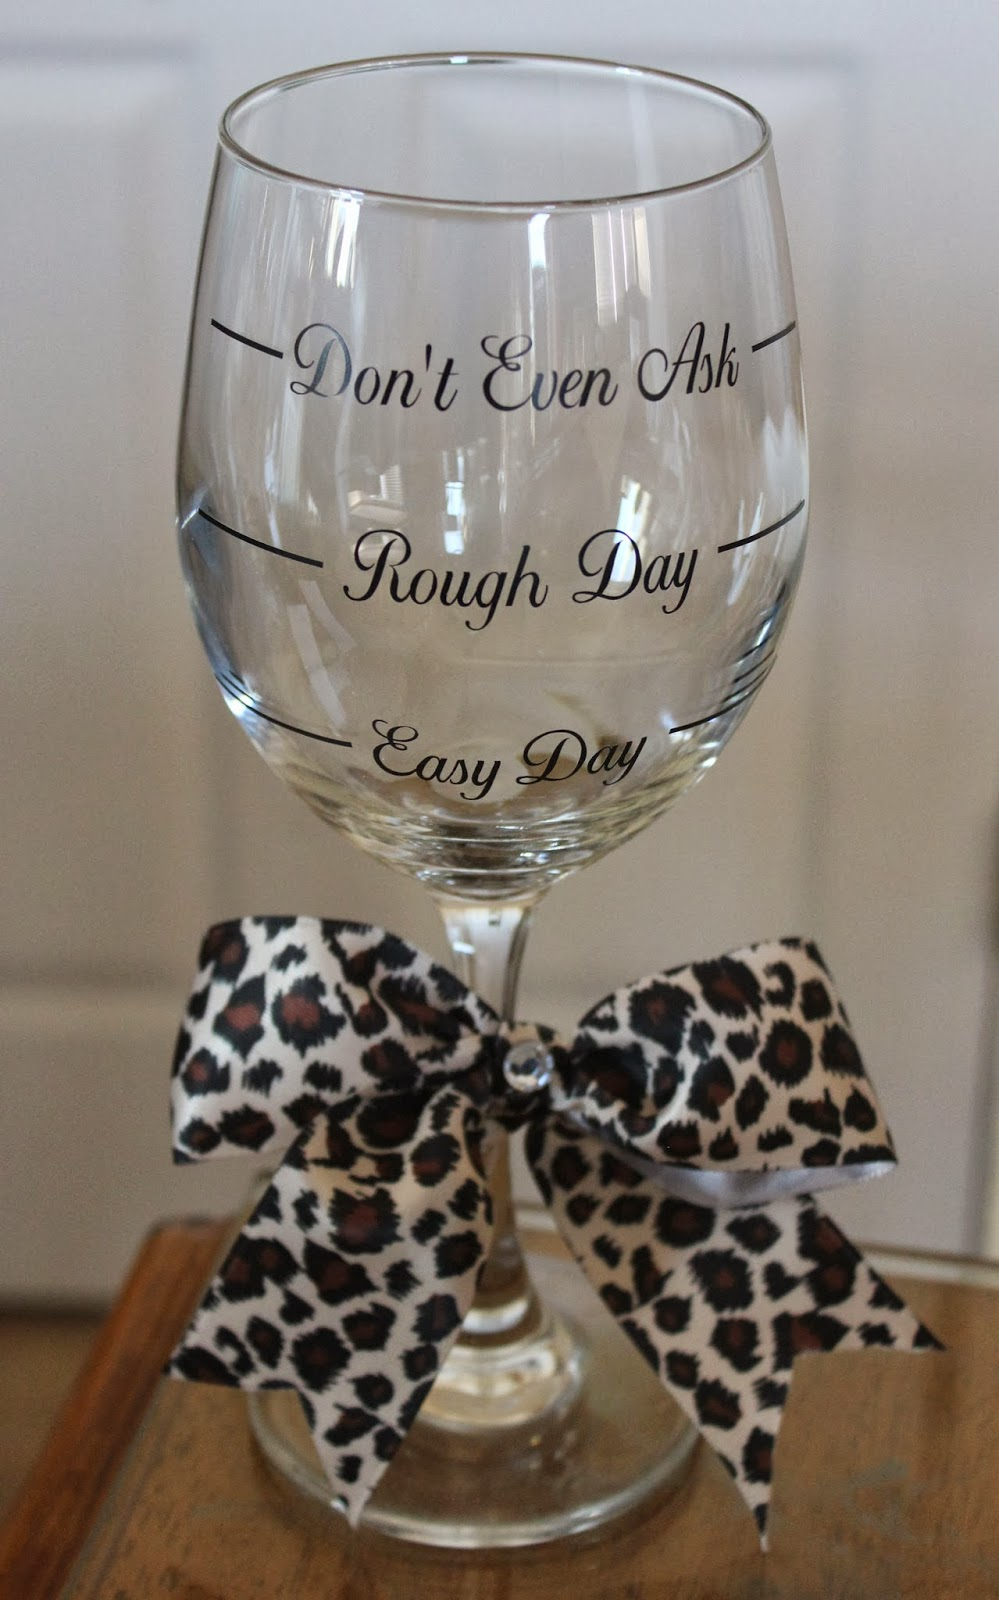 Cher 39 S Signs By Design Wine Glasses Easy Day Rough Day